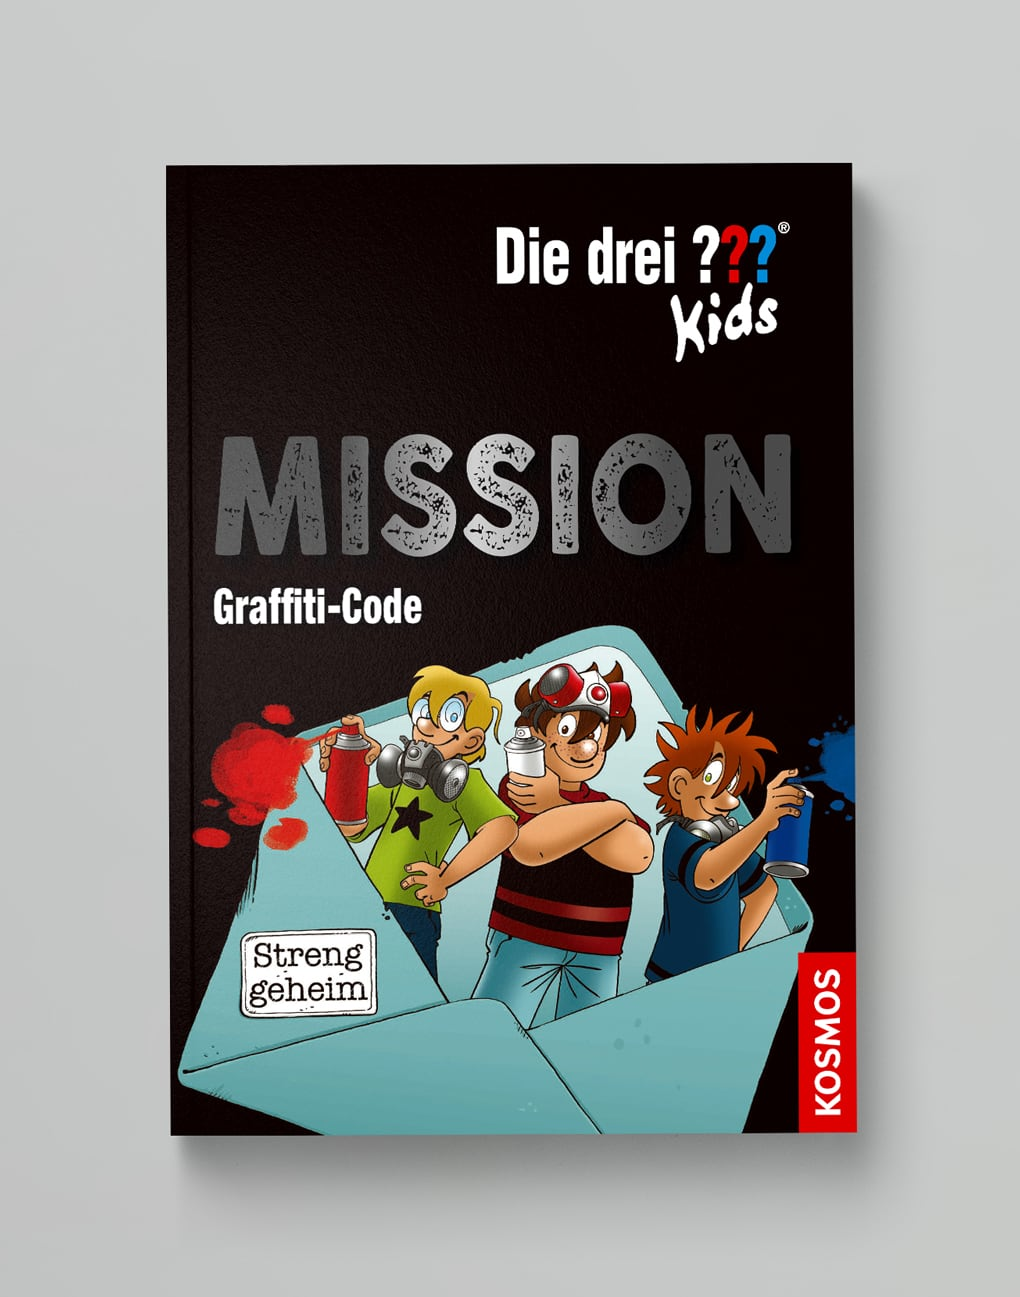 Die drei ??? Kids<br>Mission Griffiti-Code